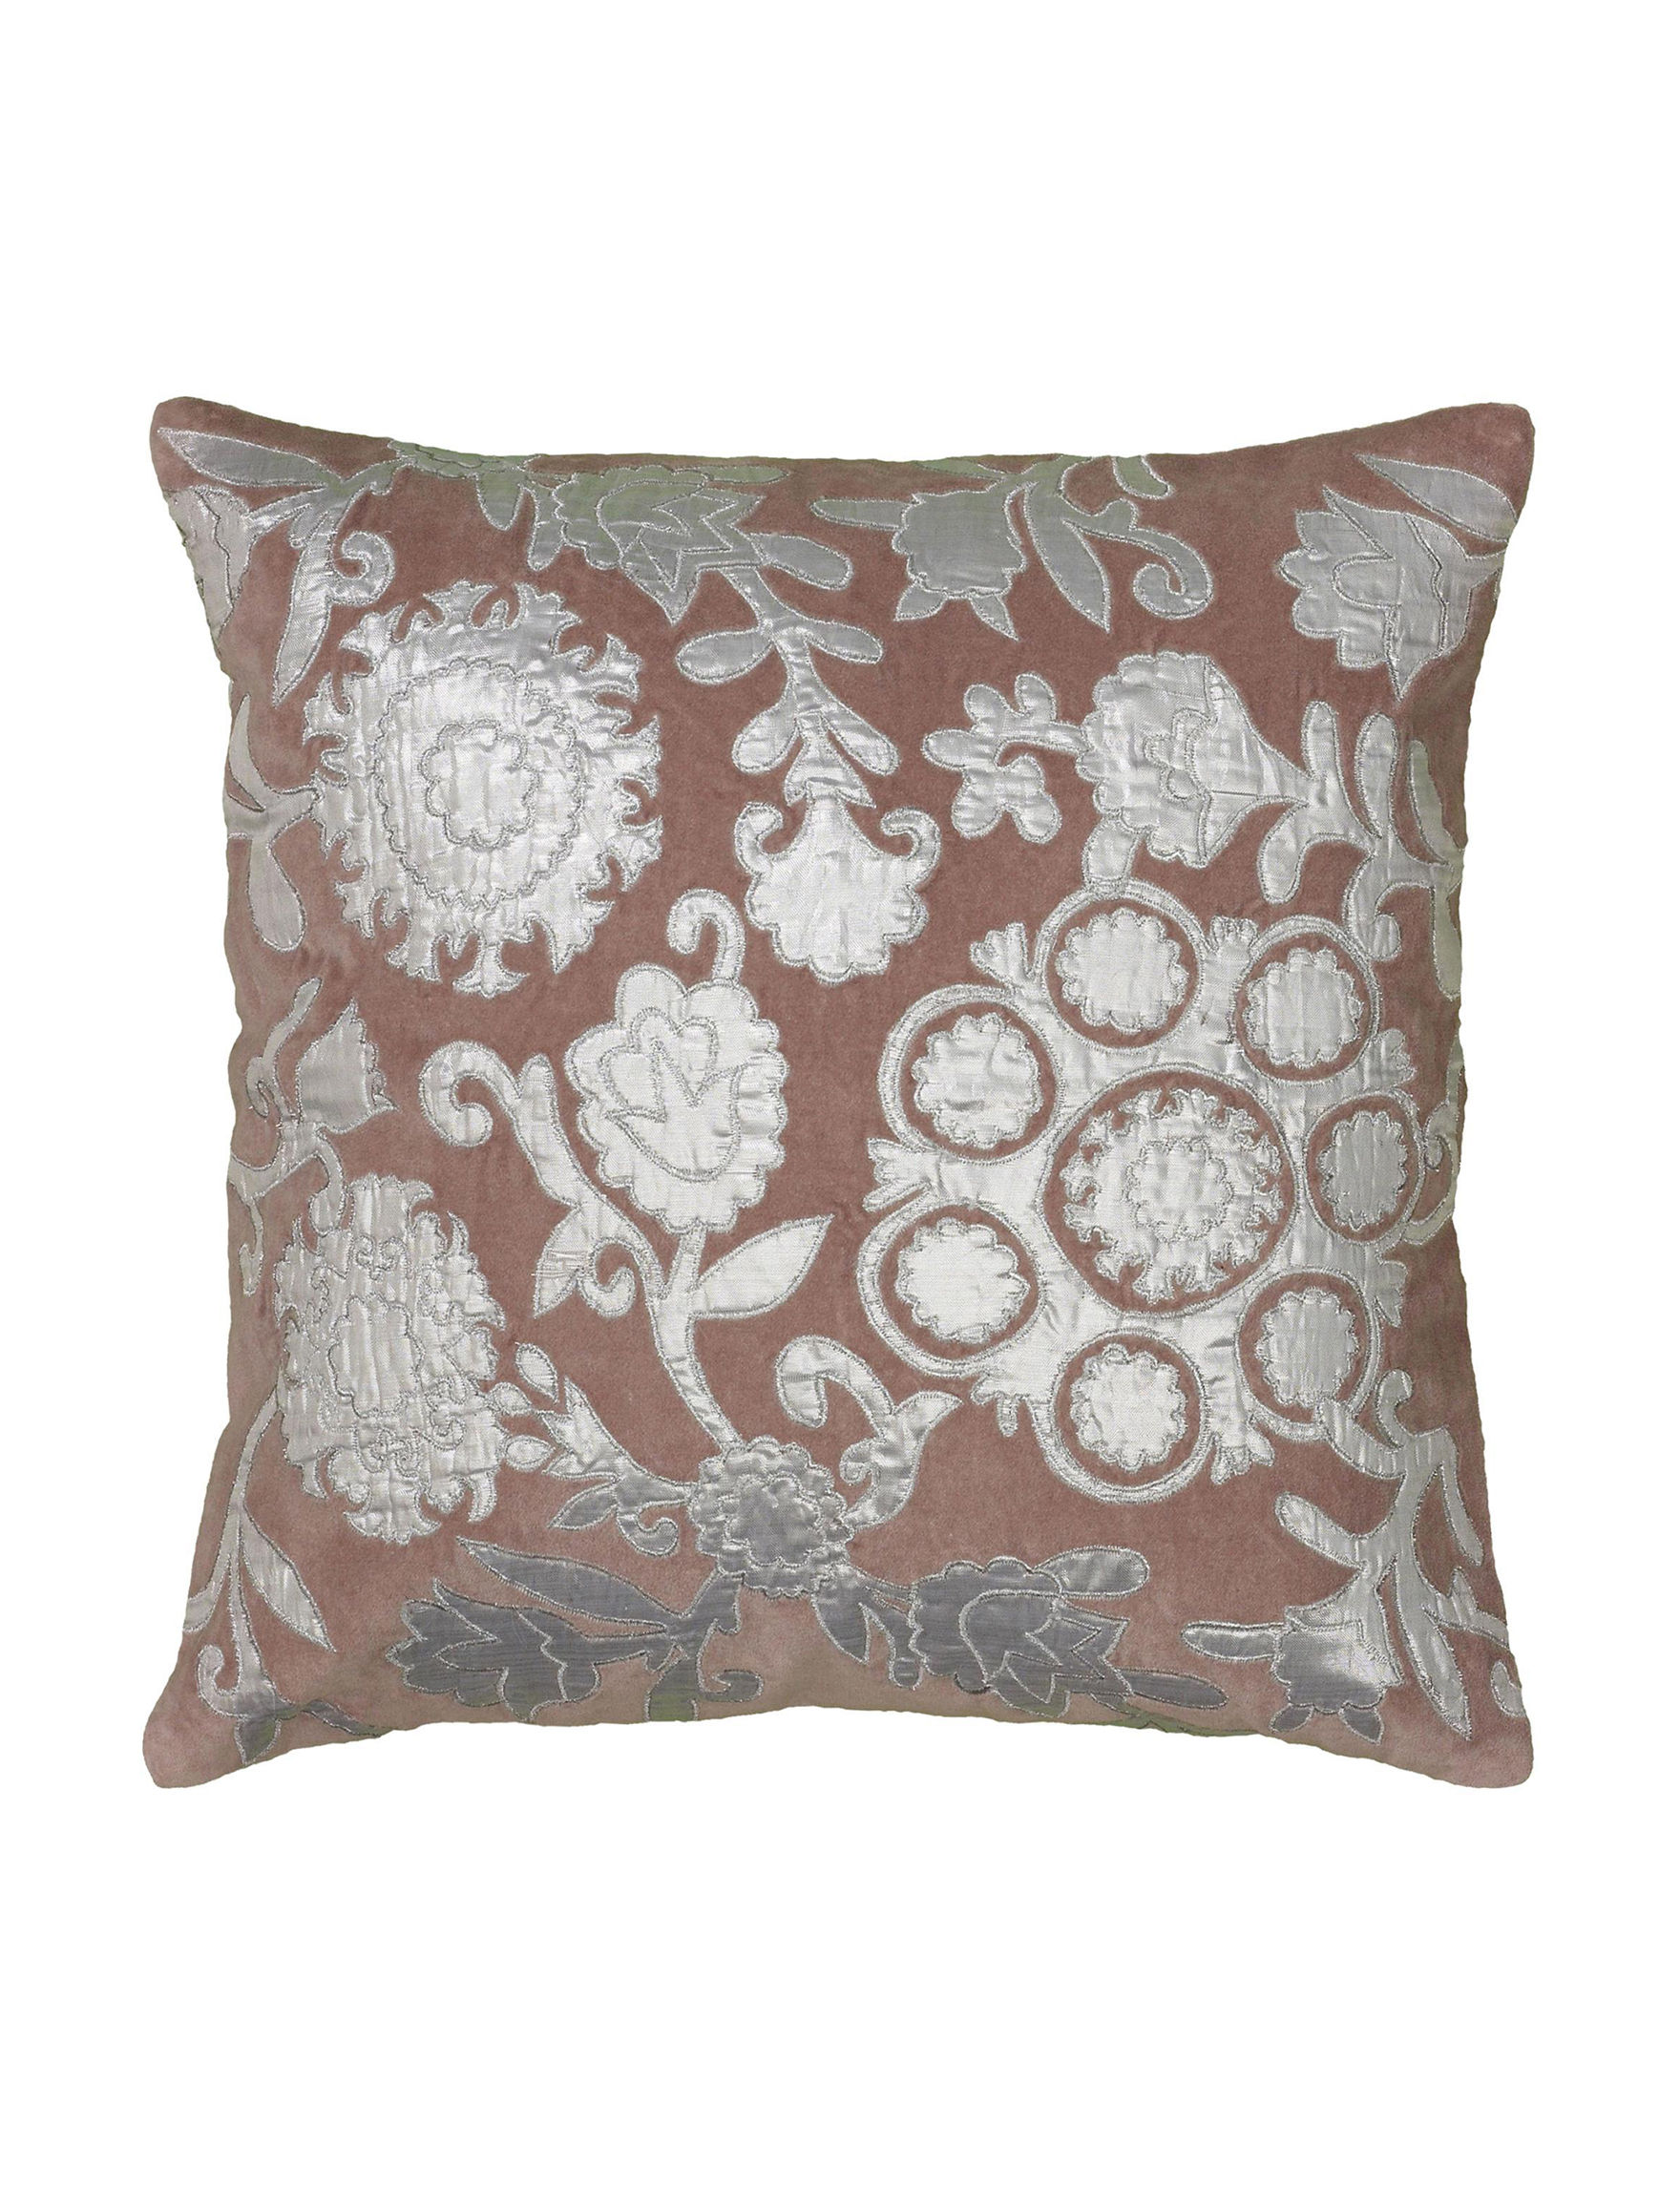 Rizzy Home Pink Decorative Pillows